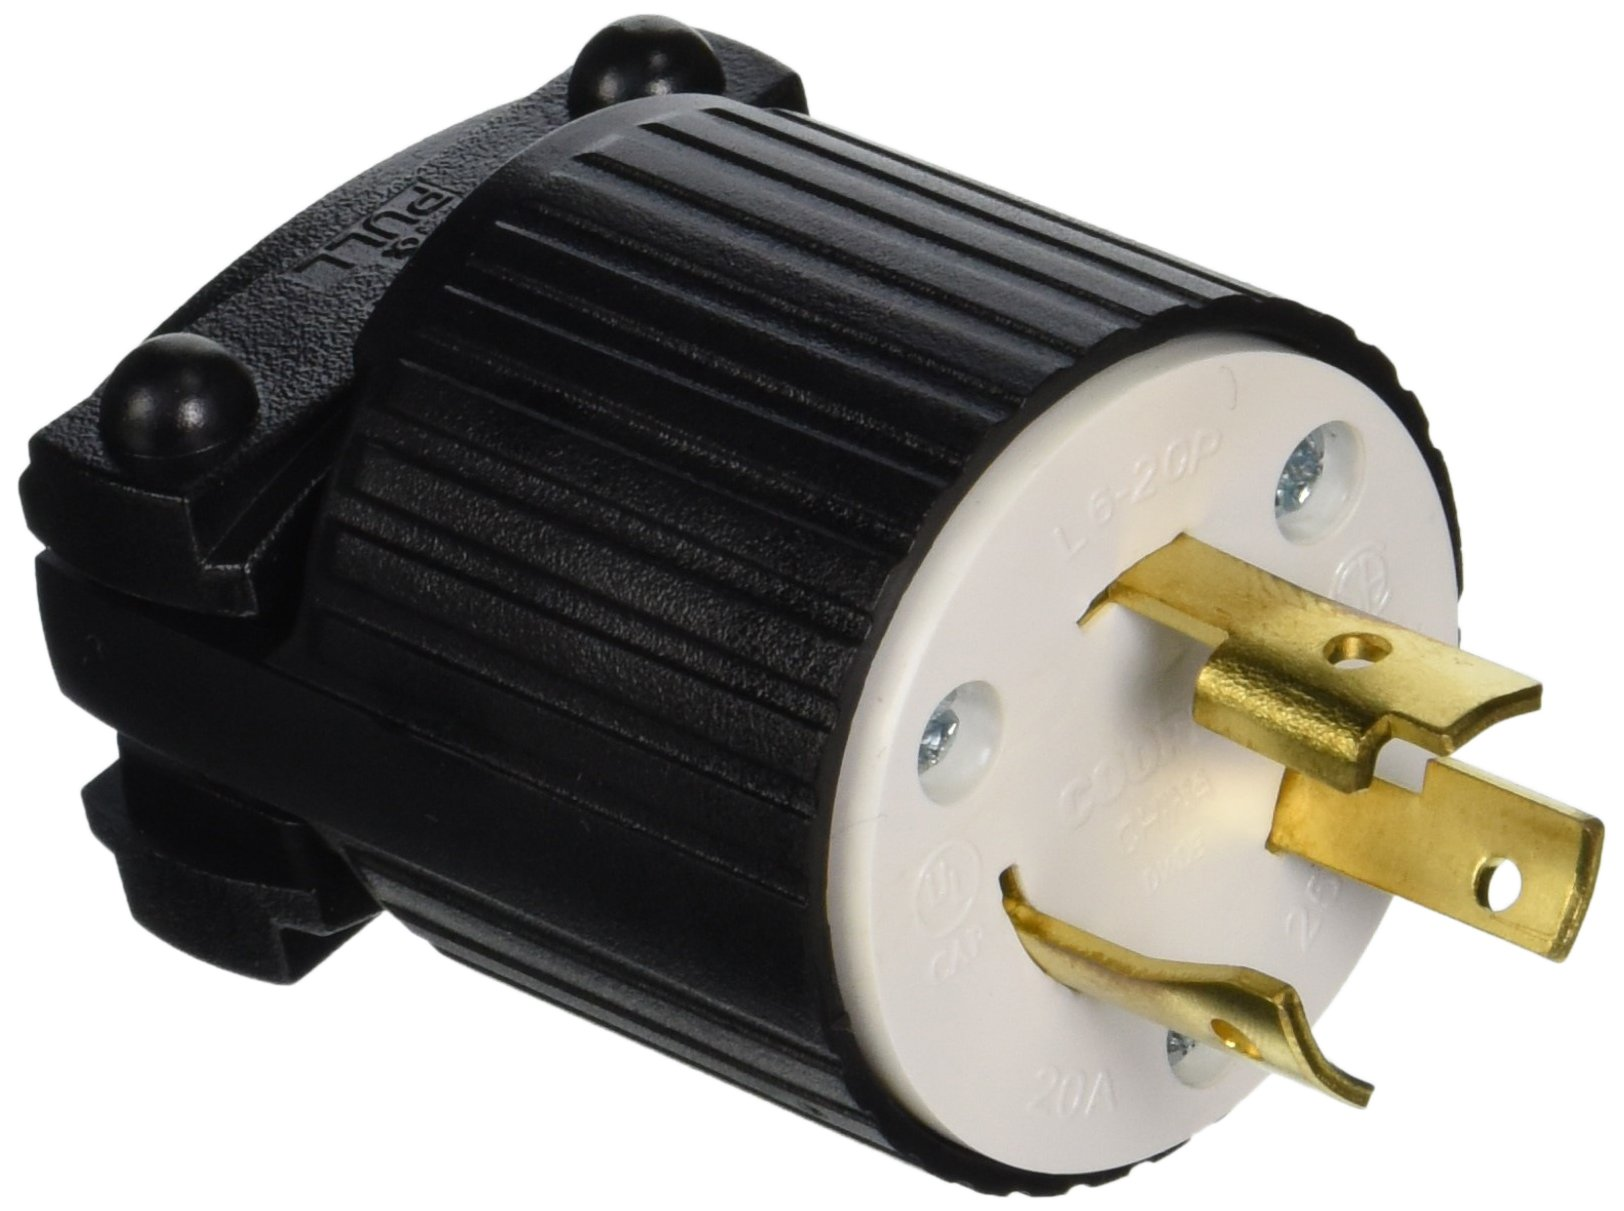 Eaton L620P 20-Amp 250-Volt Hart-Lock Industrial Grade Plug with Safety Grip Black and White